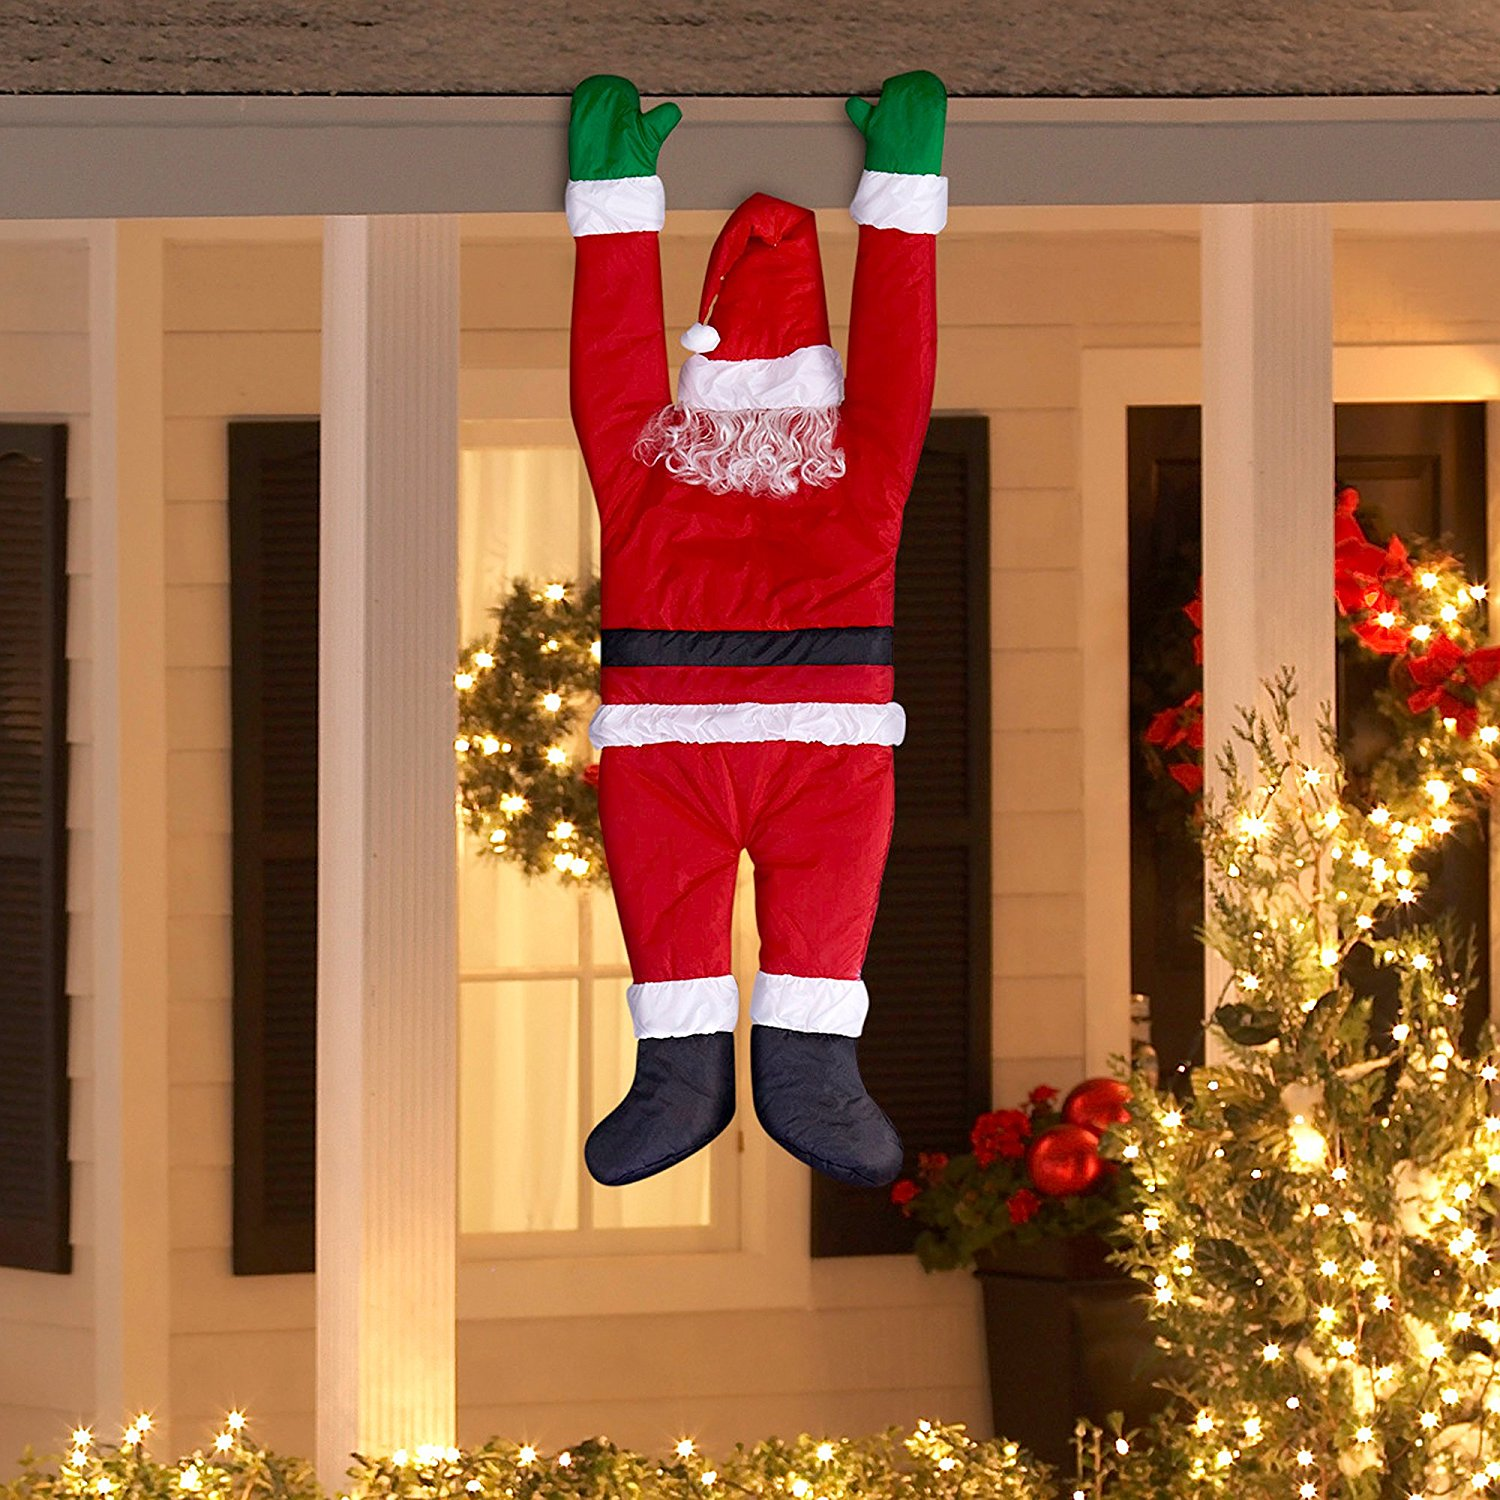 21 Christmas Decorations You Need To Have Page 15